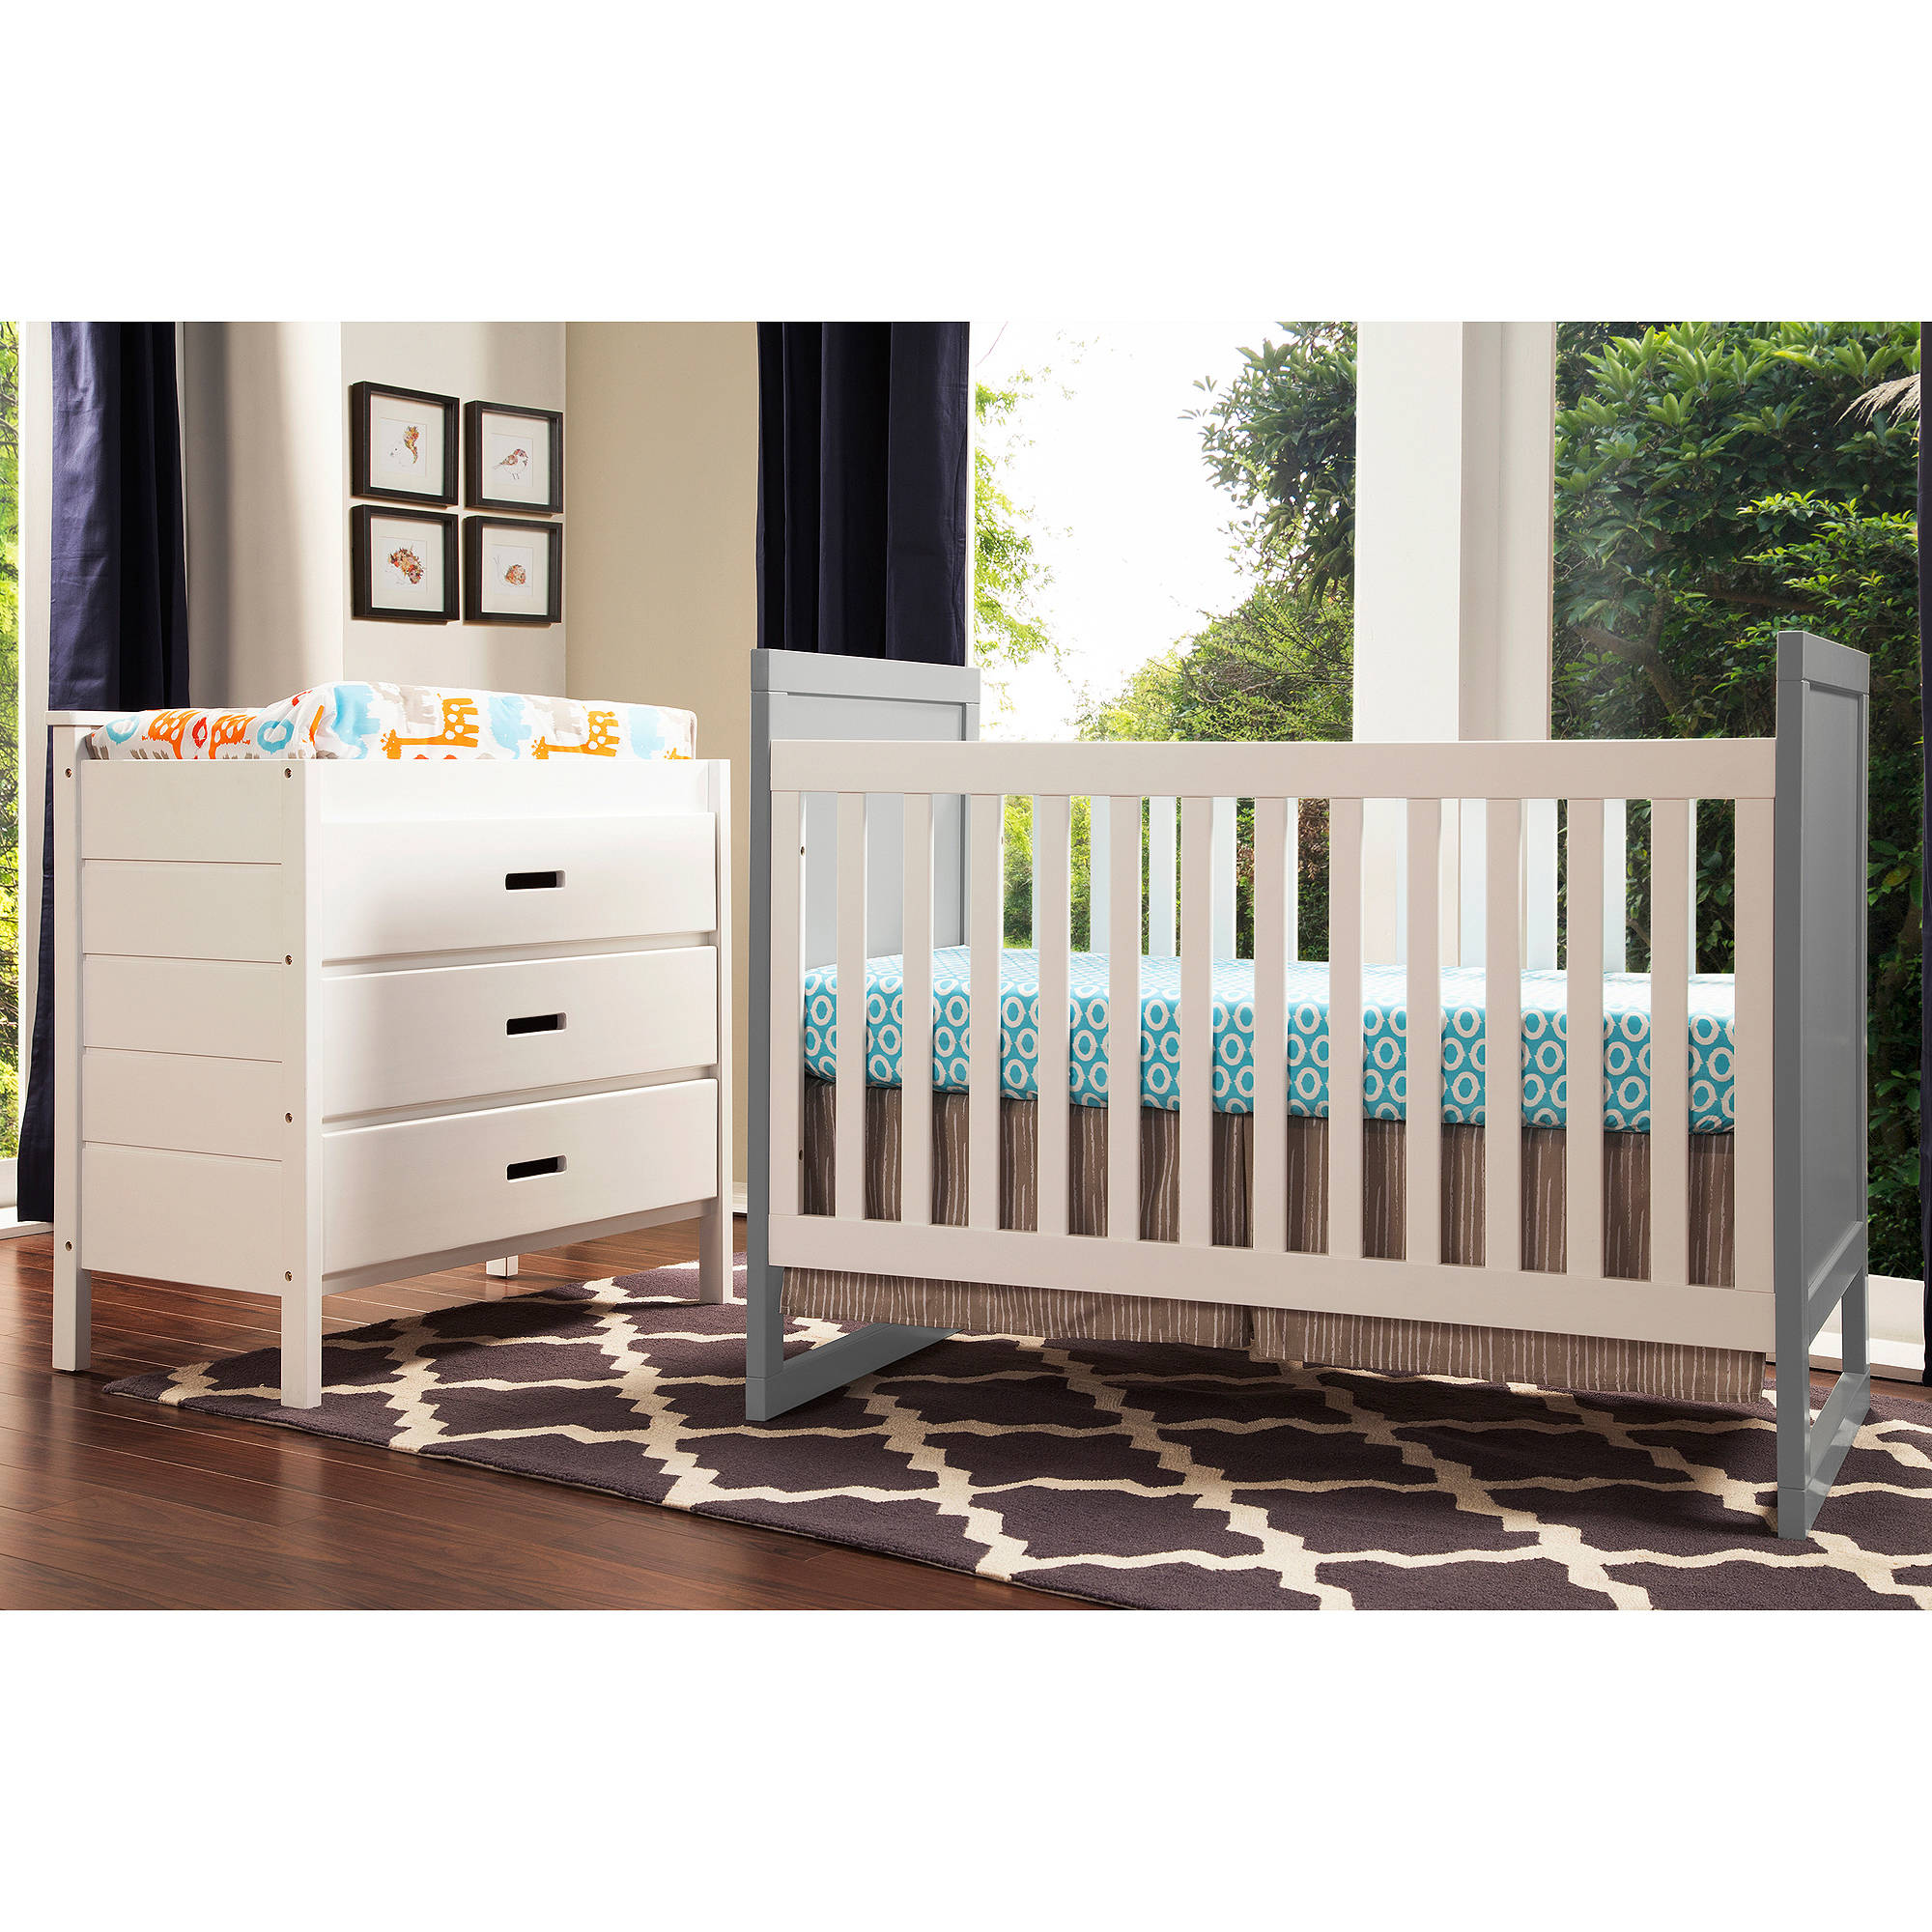 Baby Mod Modena Mod Two Tone 2 In 1 Convertible Crib Gray And White